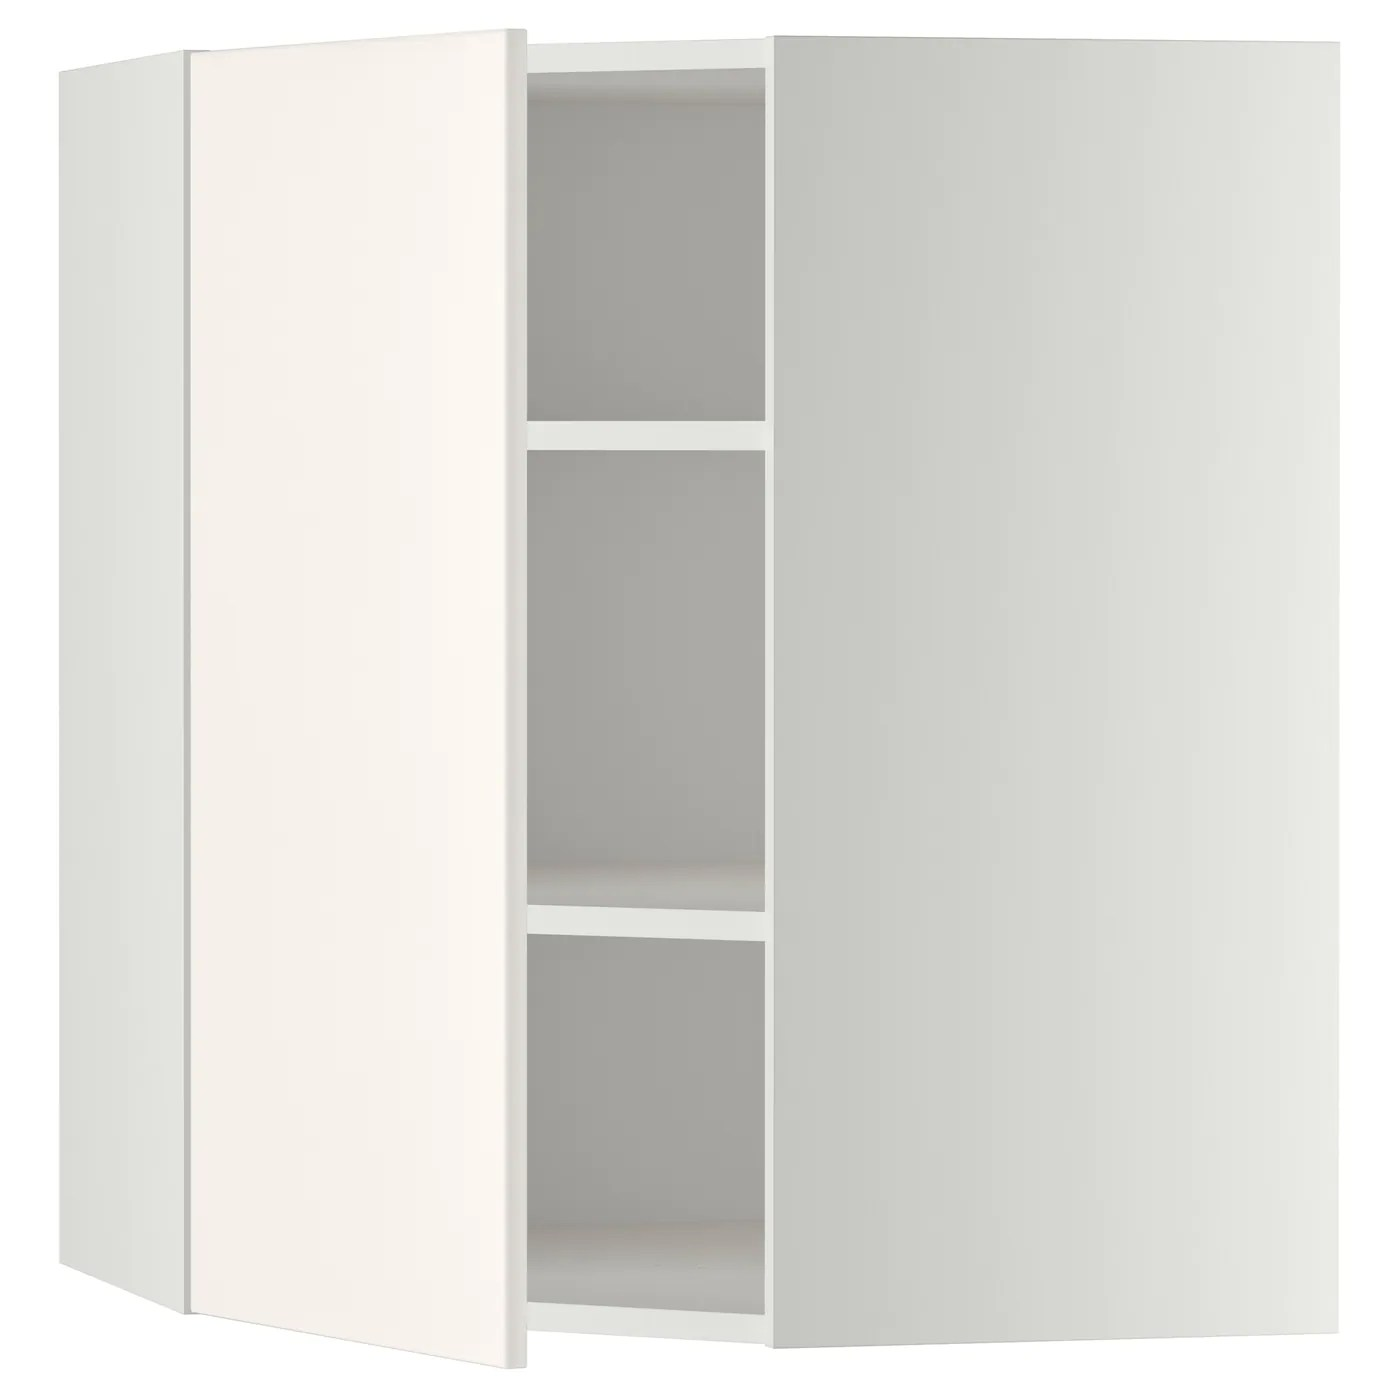 Ikea Küchenschrank Veddinge Metod Corner Wall Cabinet With Shelves White Veddinge